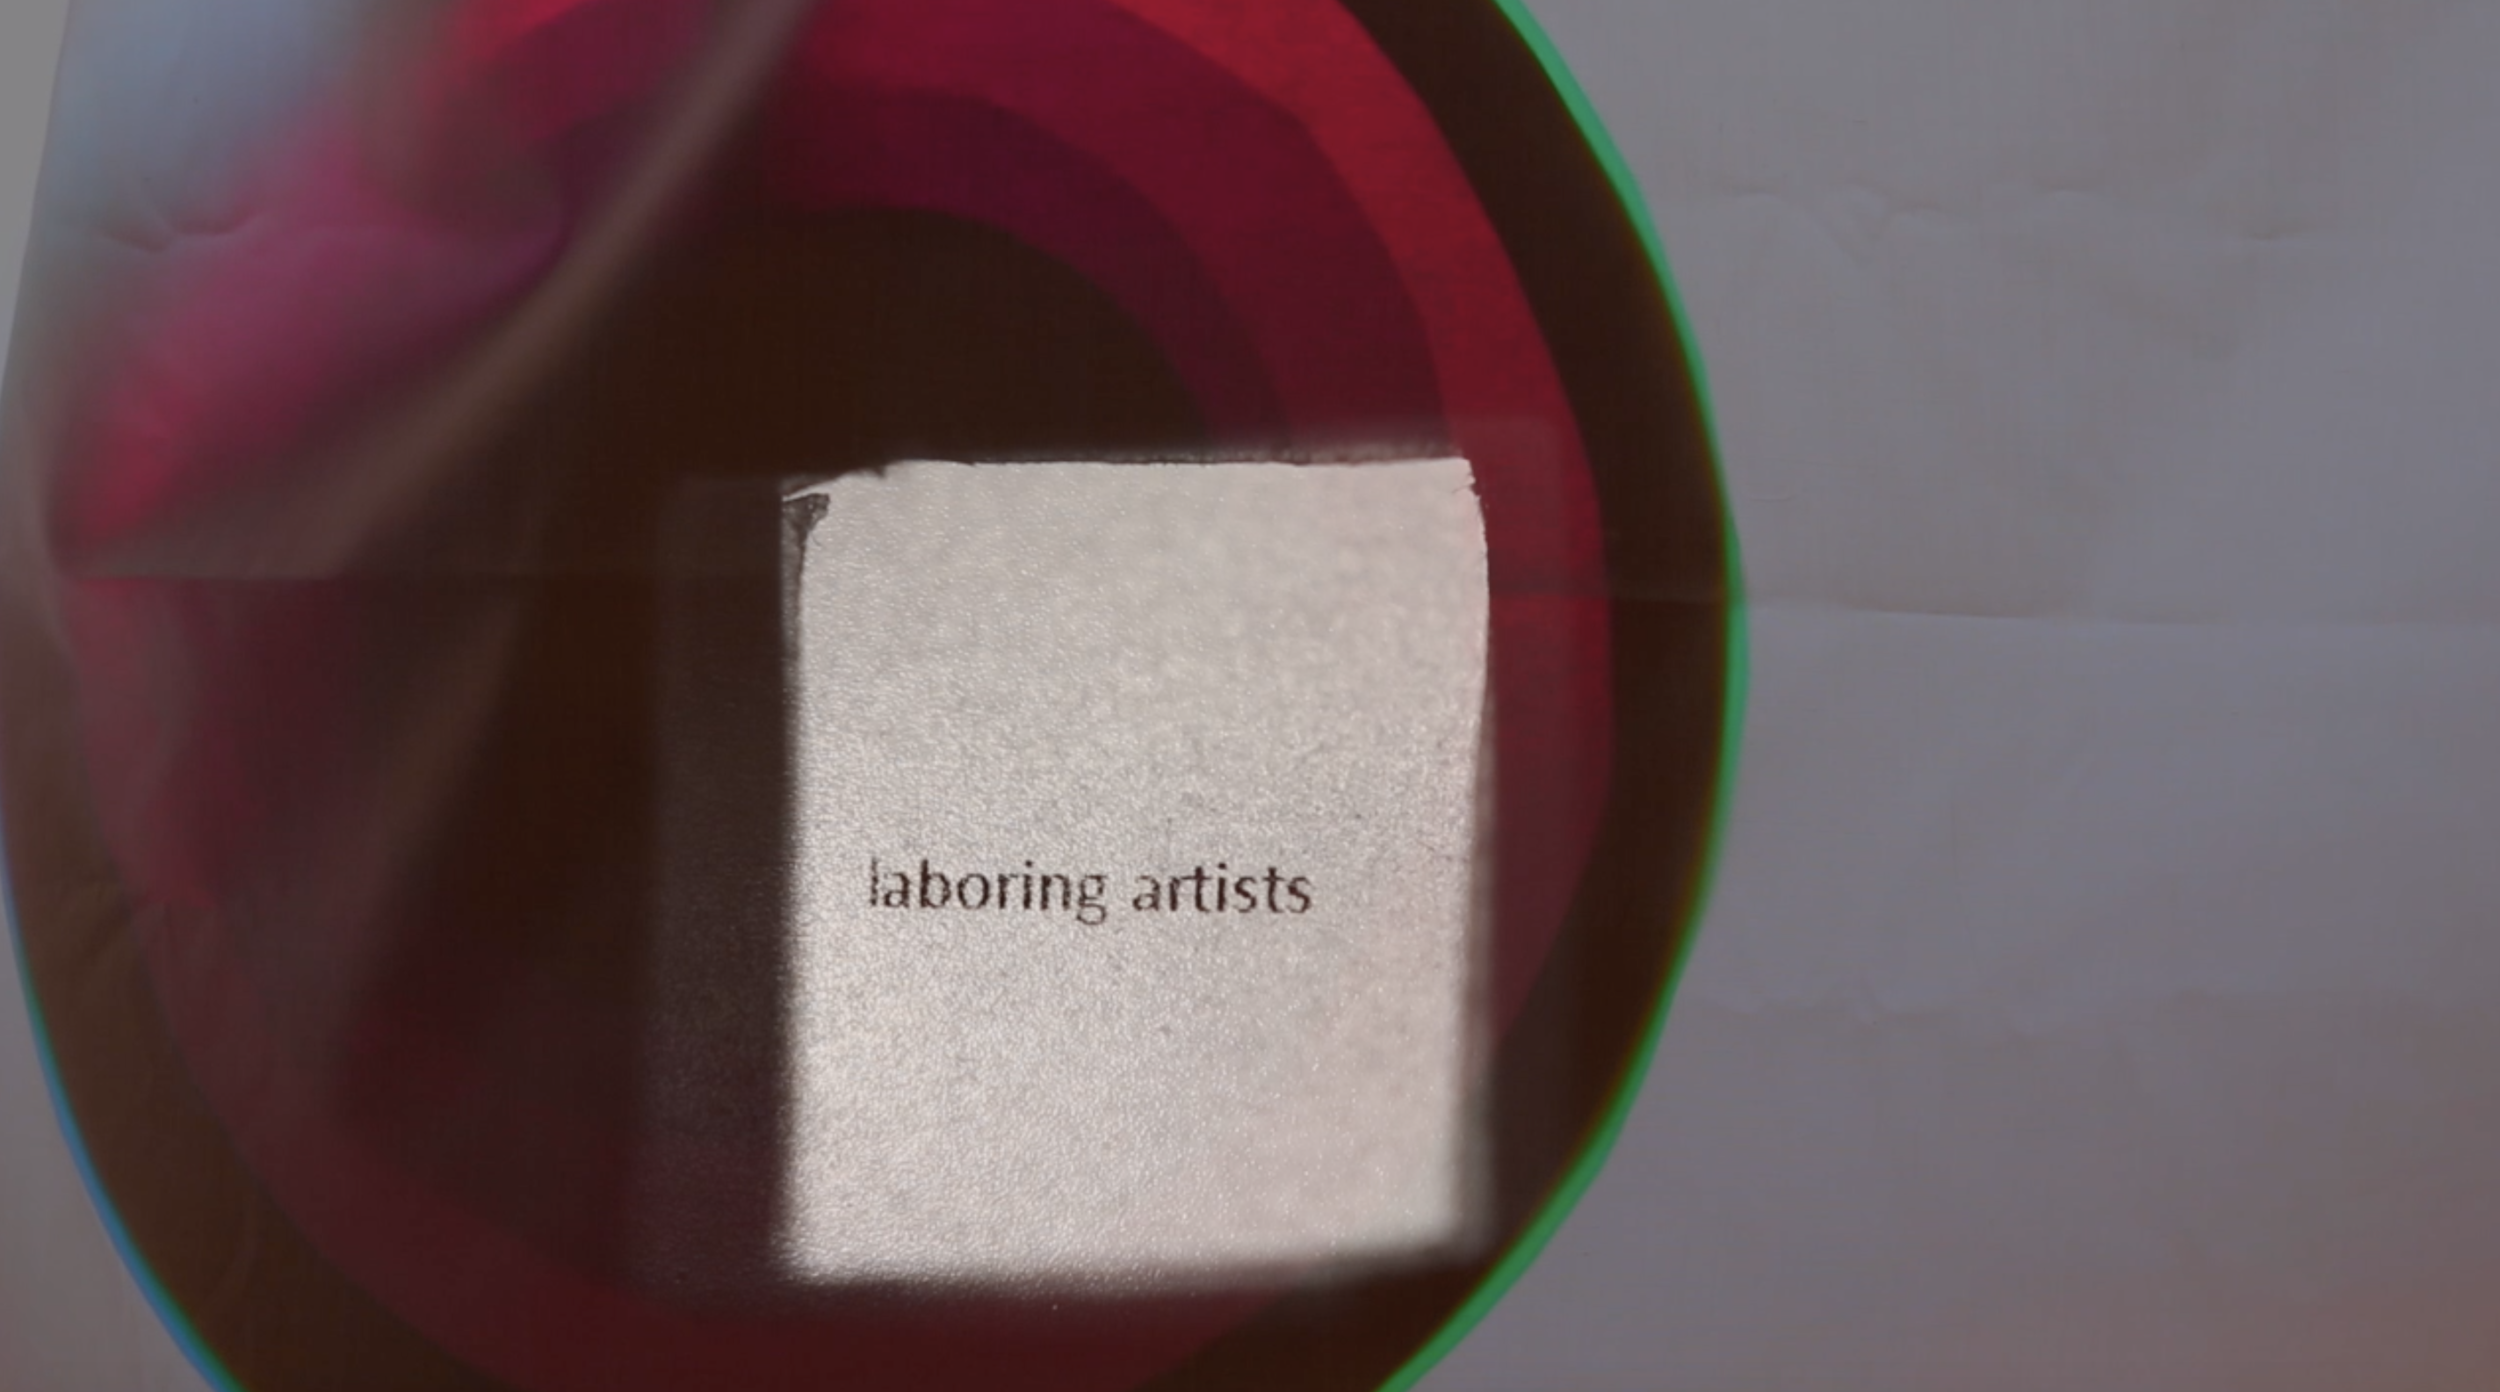 """Still from video projection created for the performance of """"Emilia Galotti's Colouring Book of Feelings,"""" written by Sophie Seita."""